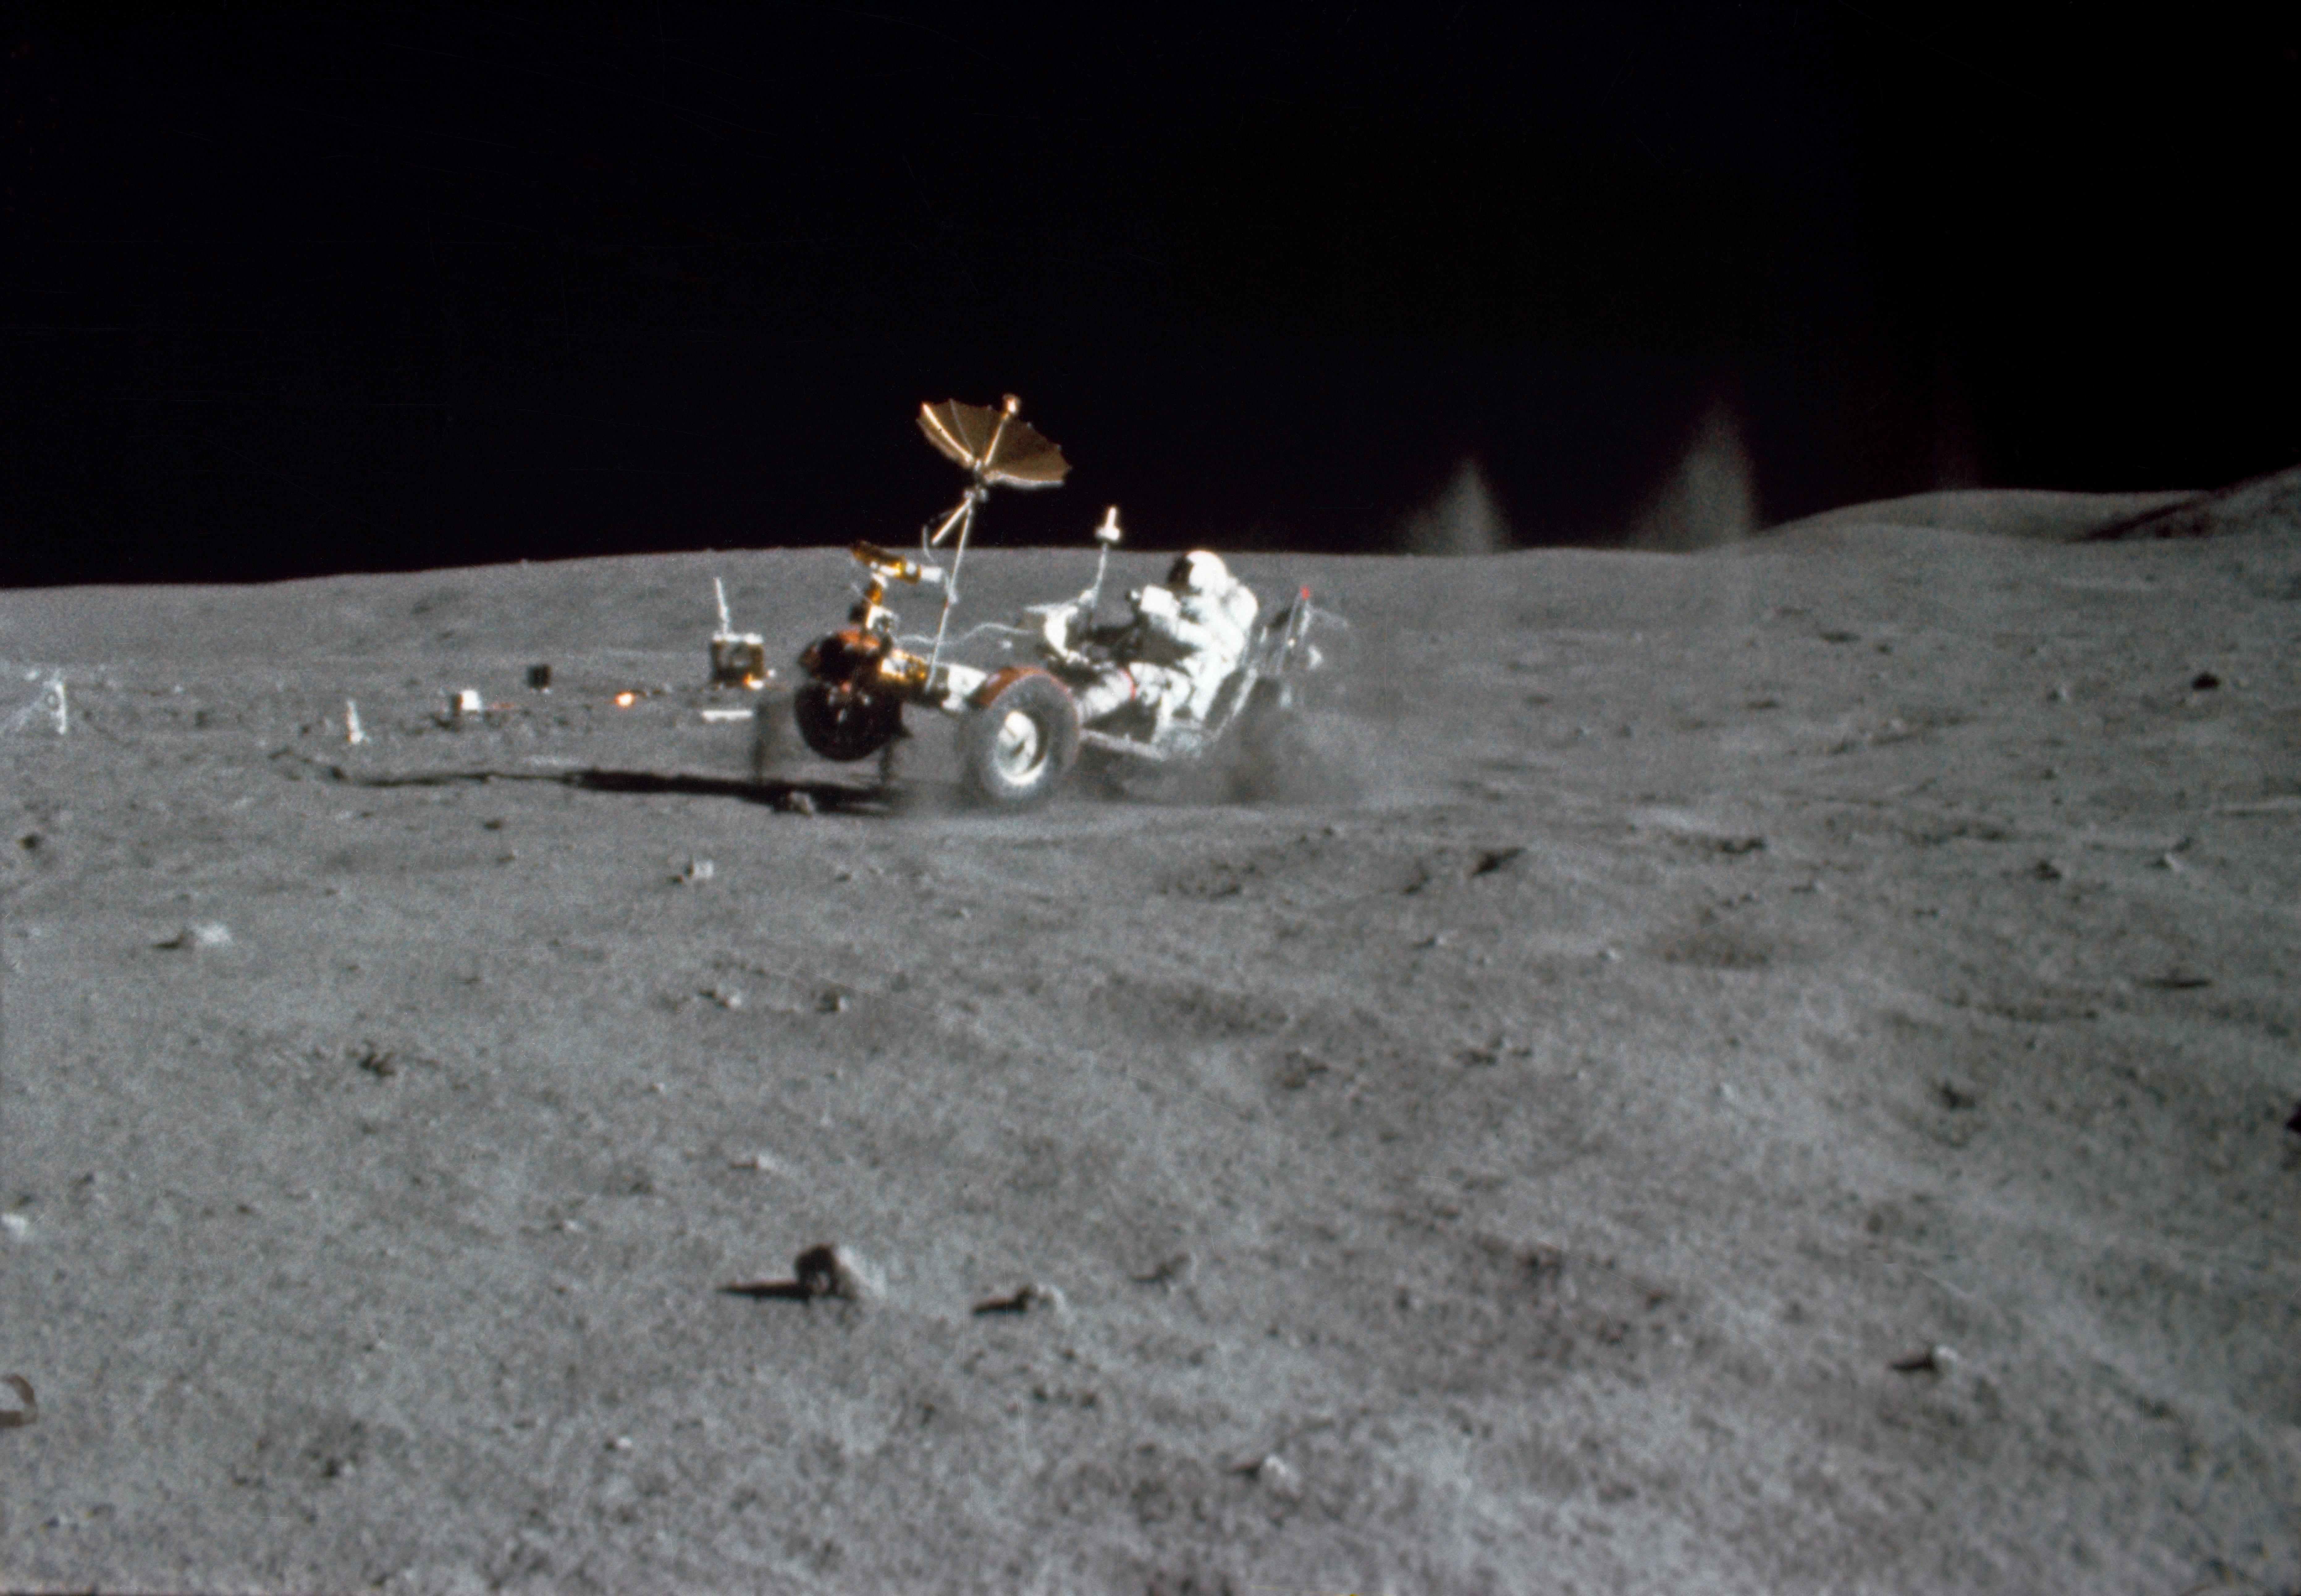 Astronaut John W. Young drives the Lunar Roving Vehicle (LRV) during the first Apollo 16 spacewalk at the Descartes landing site on the moon in this  April 21, 1972 handout still frame from motion picture film obtained by Reuters July 15, 2019.   NASA/Handout via REUTERS          ATTENTION EDITORS - THIS IMAGE WAS PROVIDED BY A THIRD PARTY.